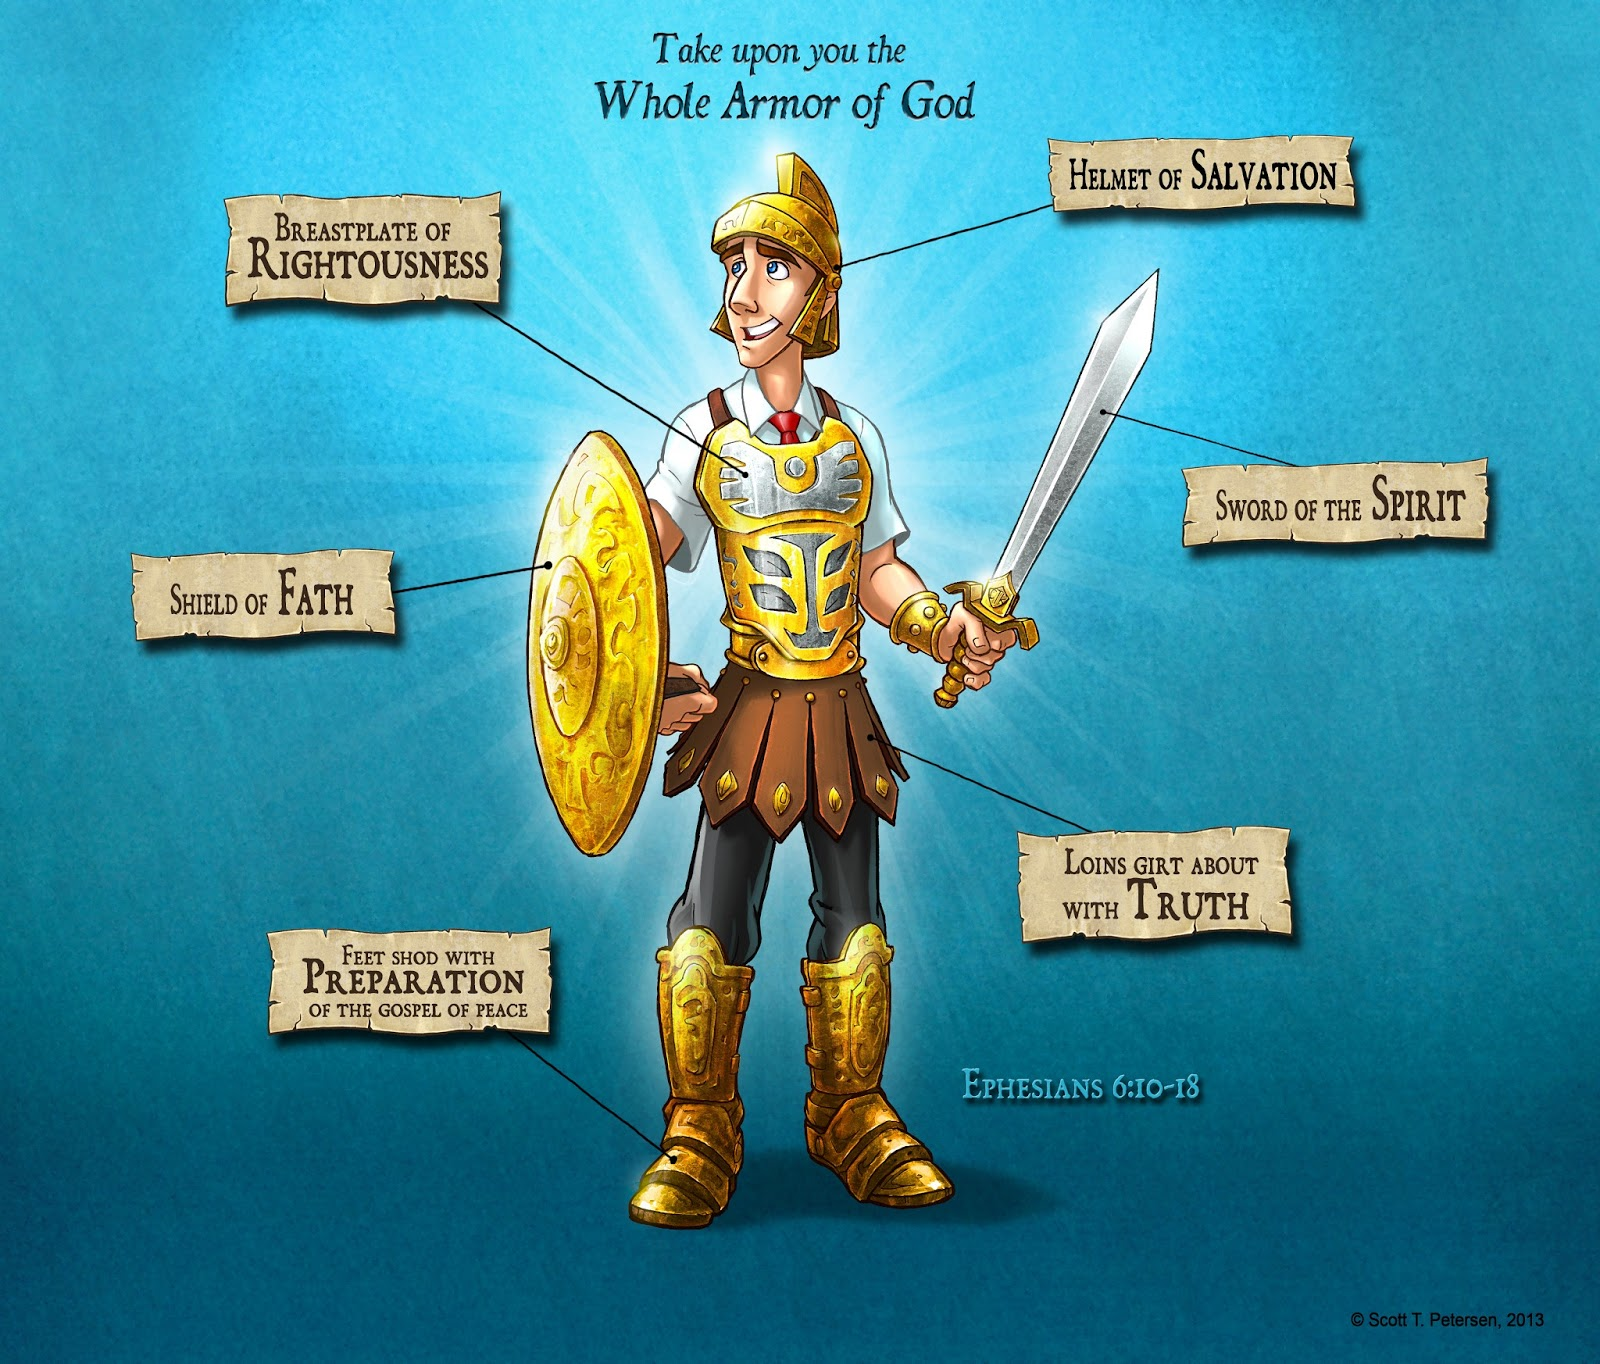 new-clothes-new-life-armor-of-god.jpg